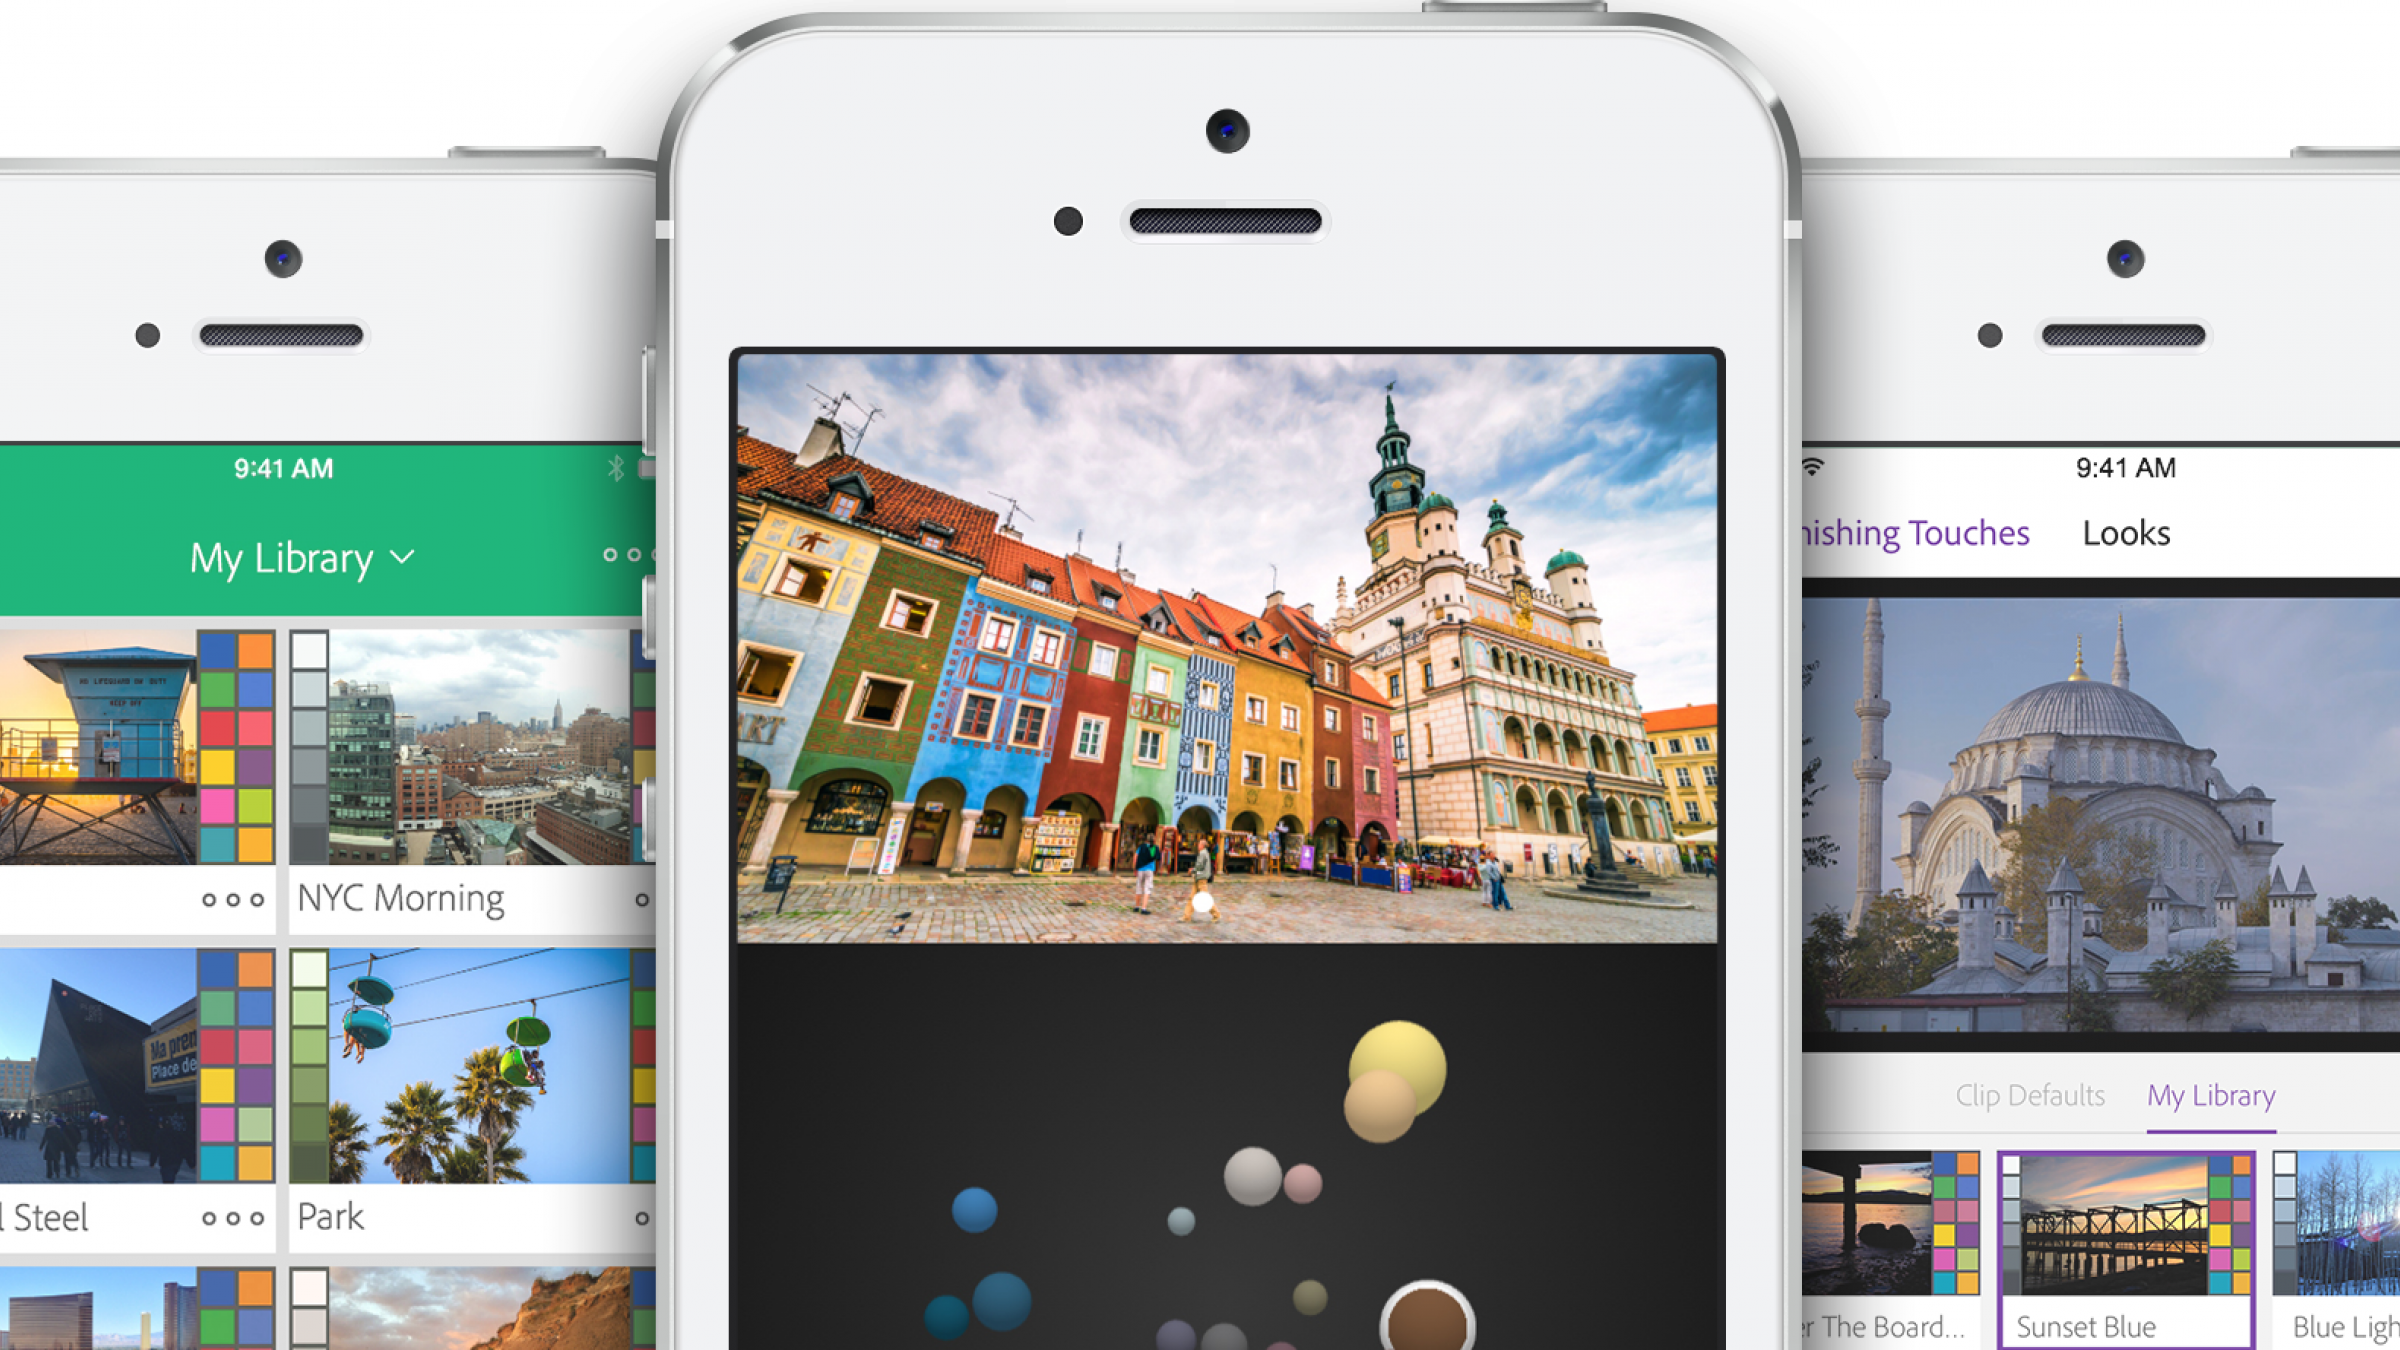 Meet Adobe Hue CC: Capture Inspiring Looks with Your Phone, Use Them In Your Edits